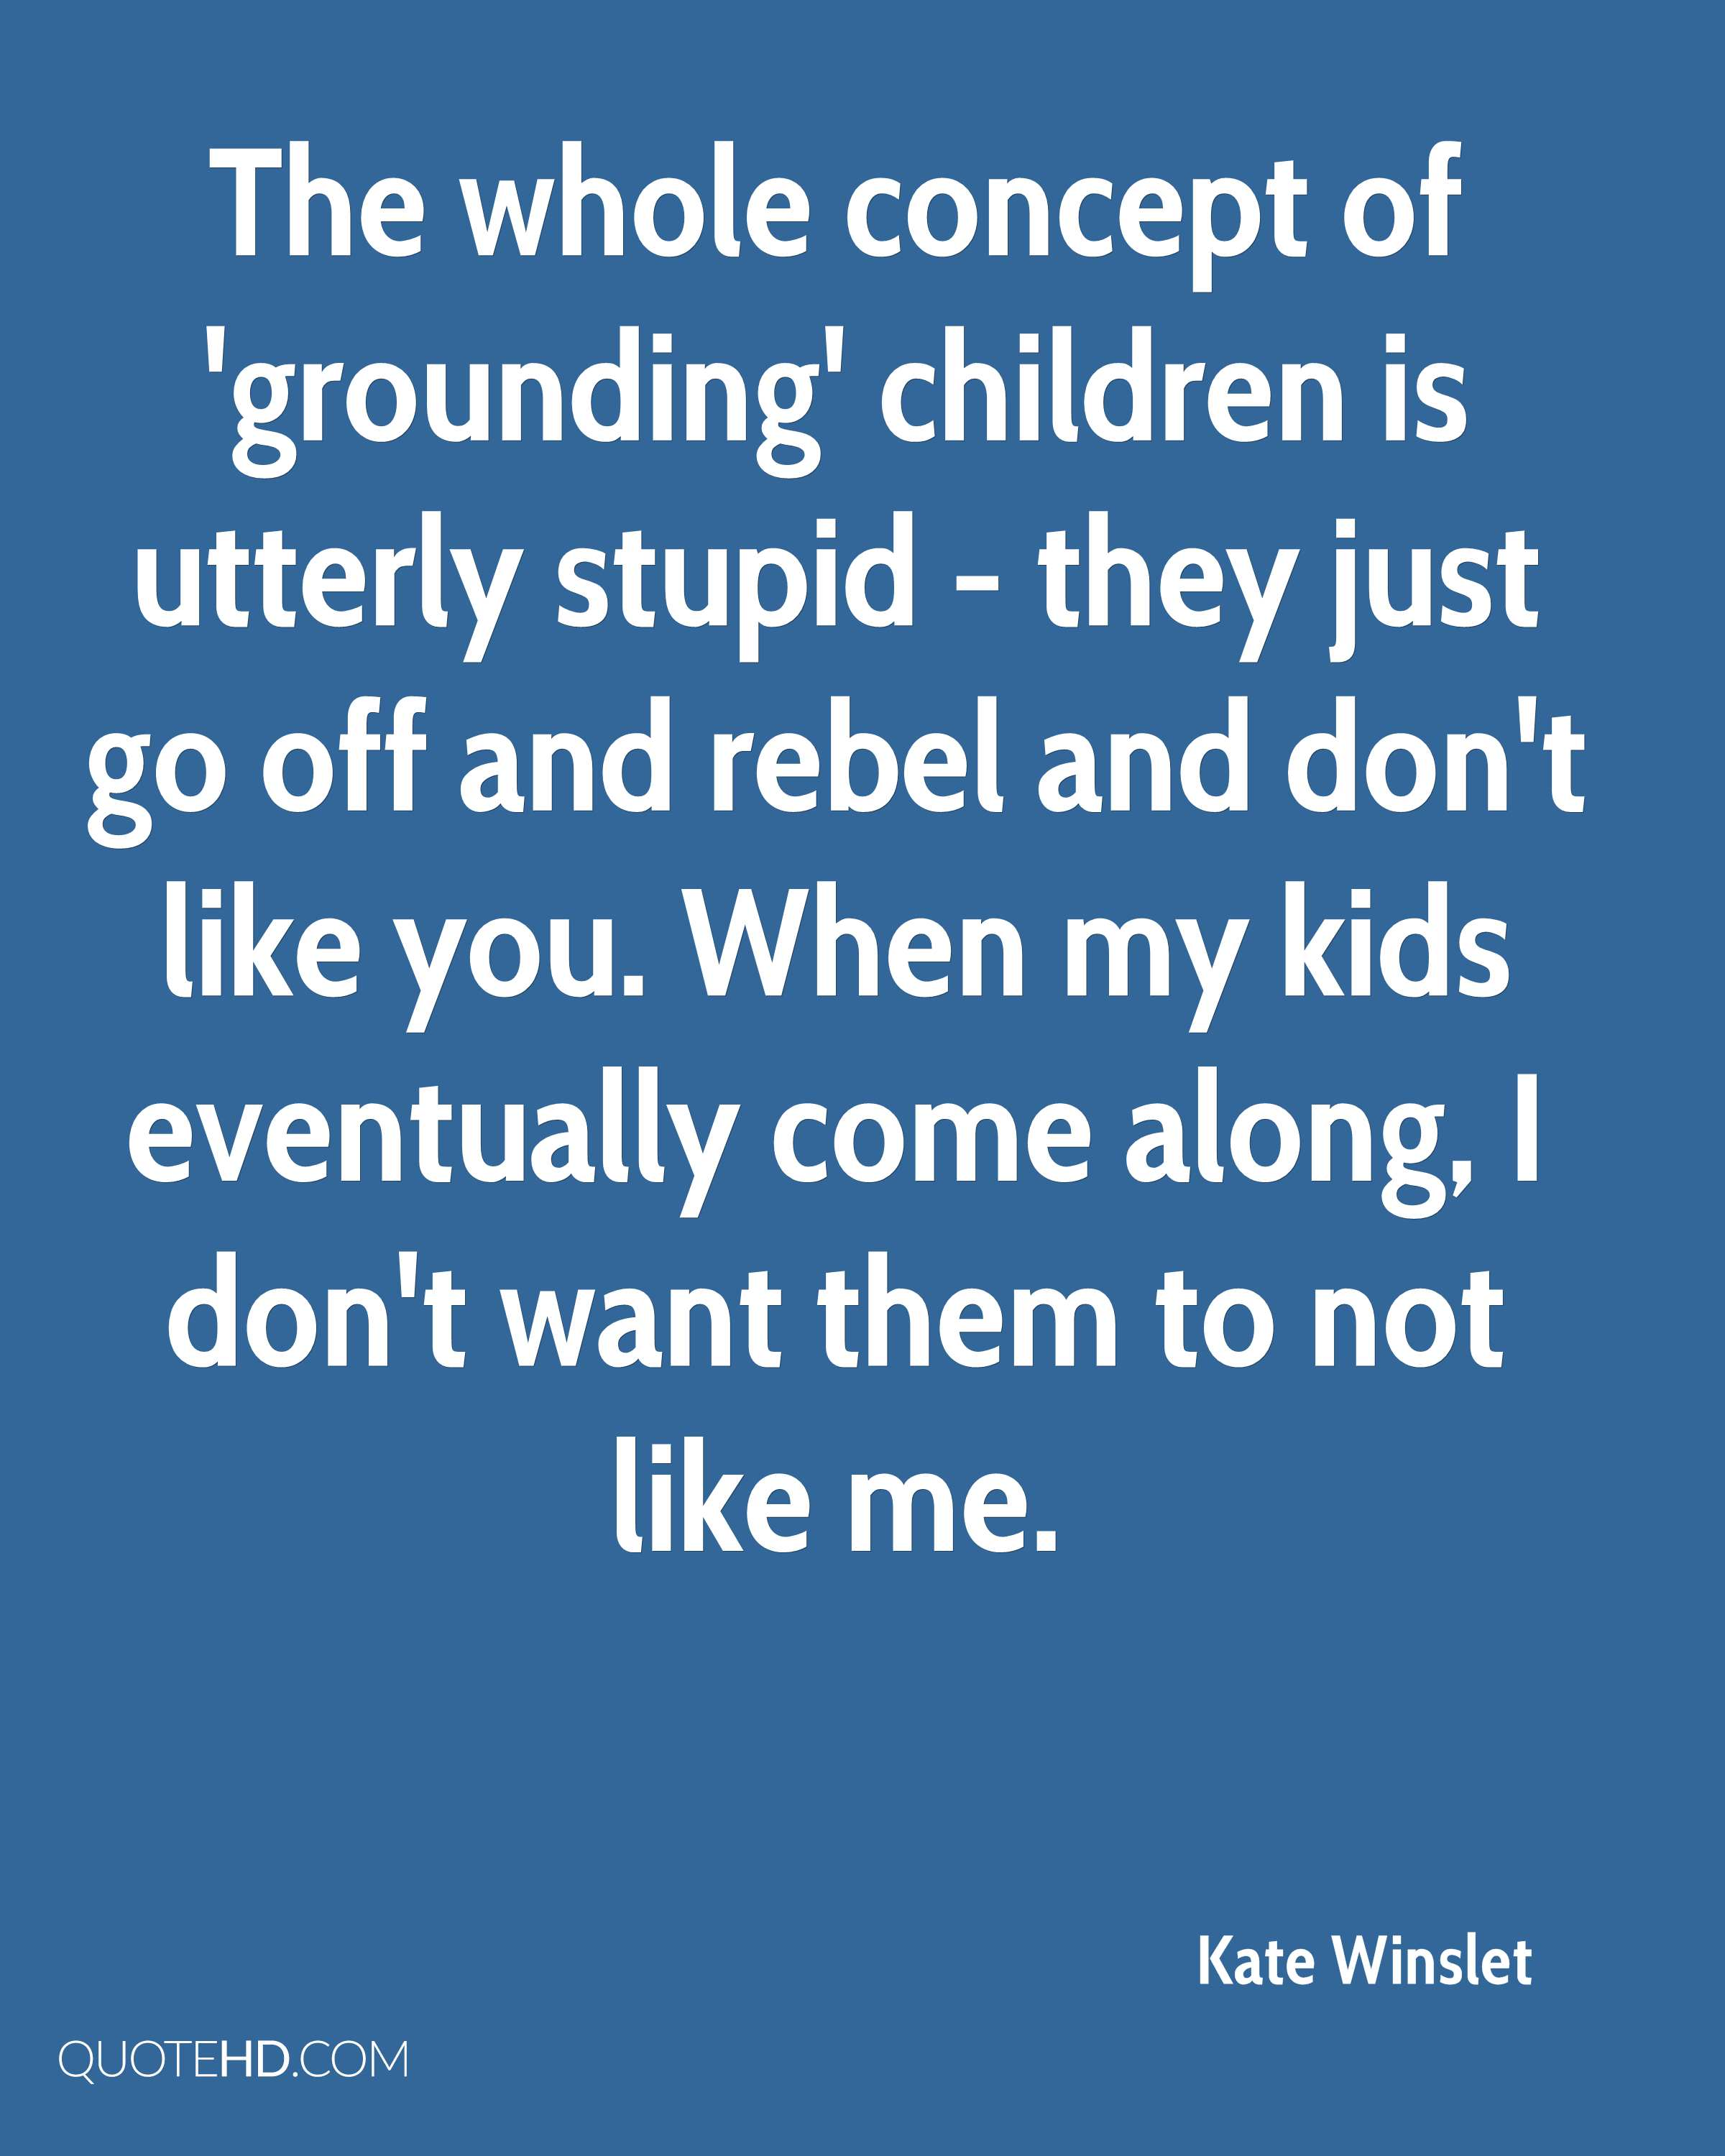 The whole concept of 'grounding' children is utterly stupid - they just go off and rebel and don't like you. When my kids eventually come along, I don't want them to not like me.